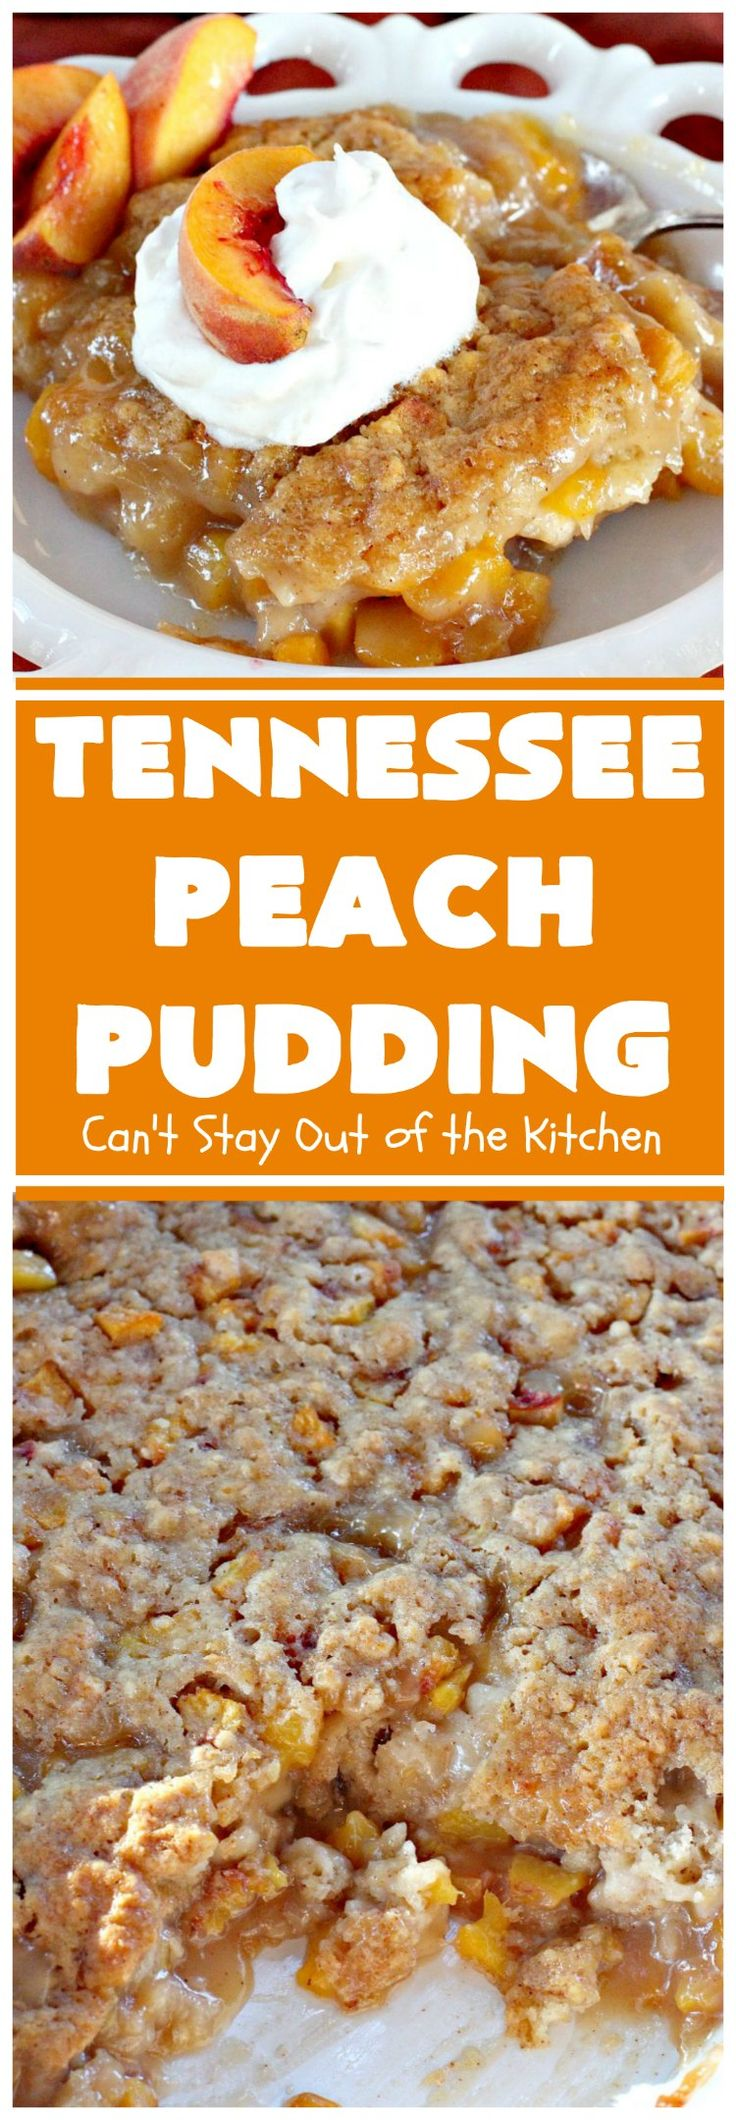 Tennessee Peach Pudding   Can't Stay Out of the Kitchen   one of the BEST #peachcobbler recipes ever! A luscious syrup is poured over the #cobbler before baking making this #dessert melt-in-your mouth delicious! #peaches